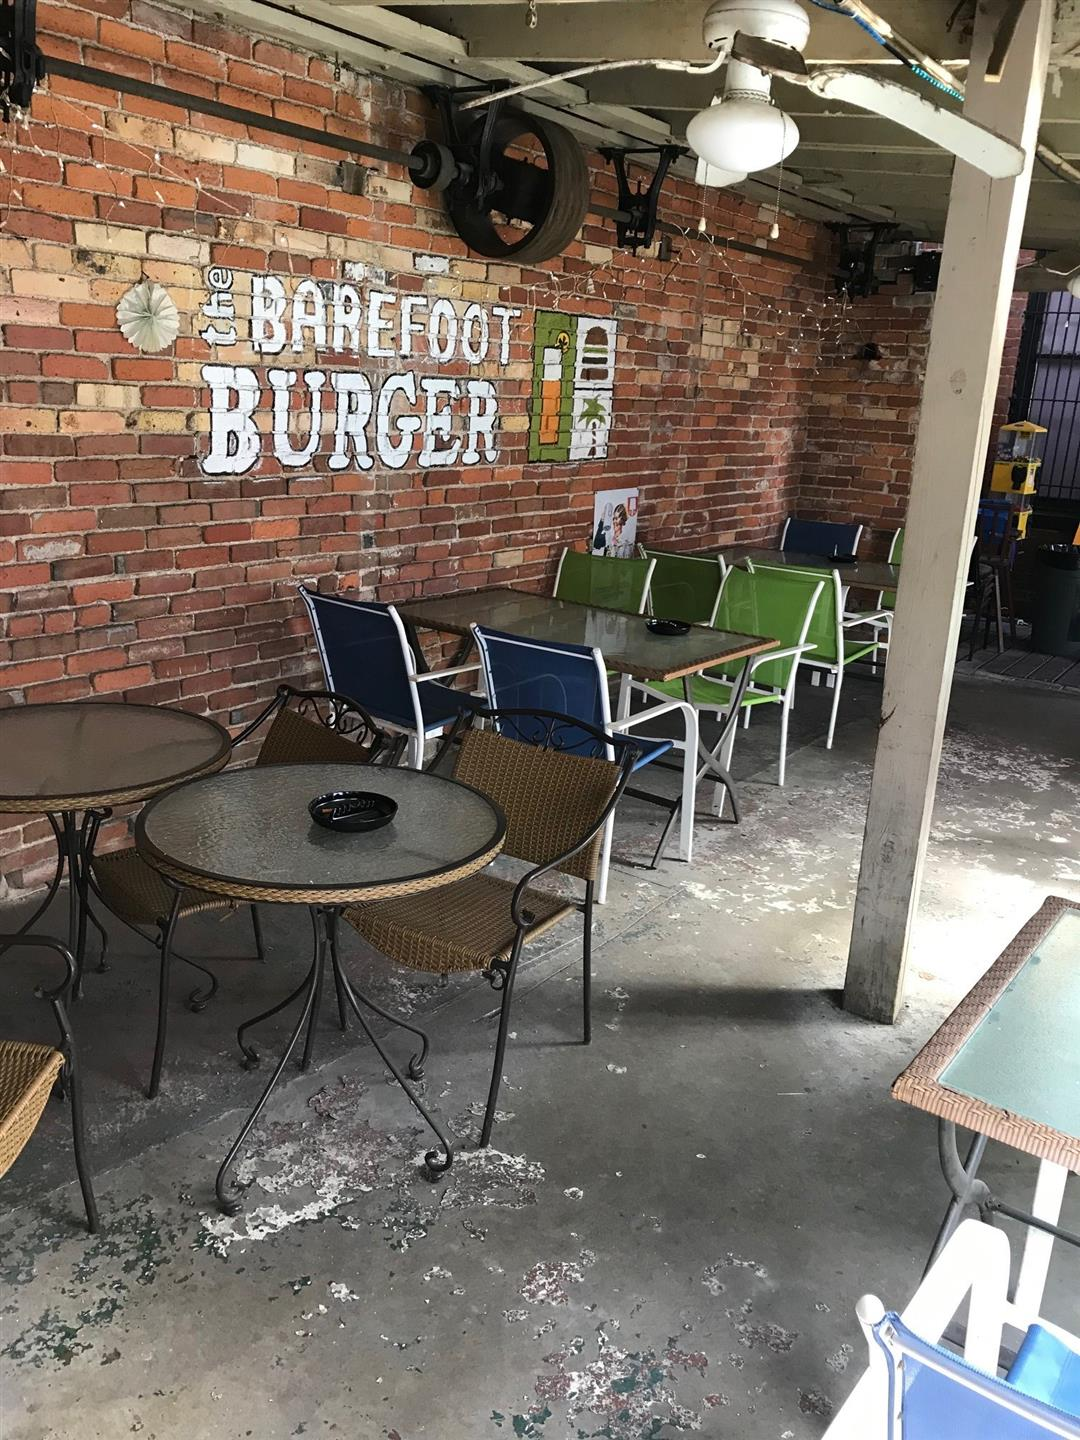 interior view of restaurant with brick wall, and outdoor paio furniture with sign on wall that says Barefoot Burger